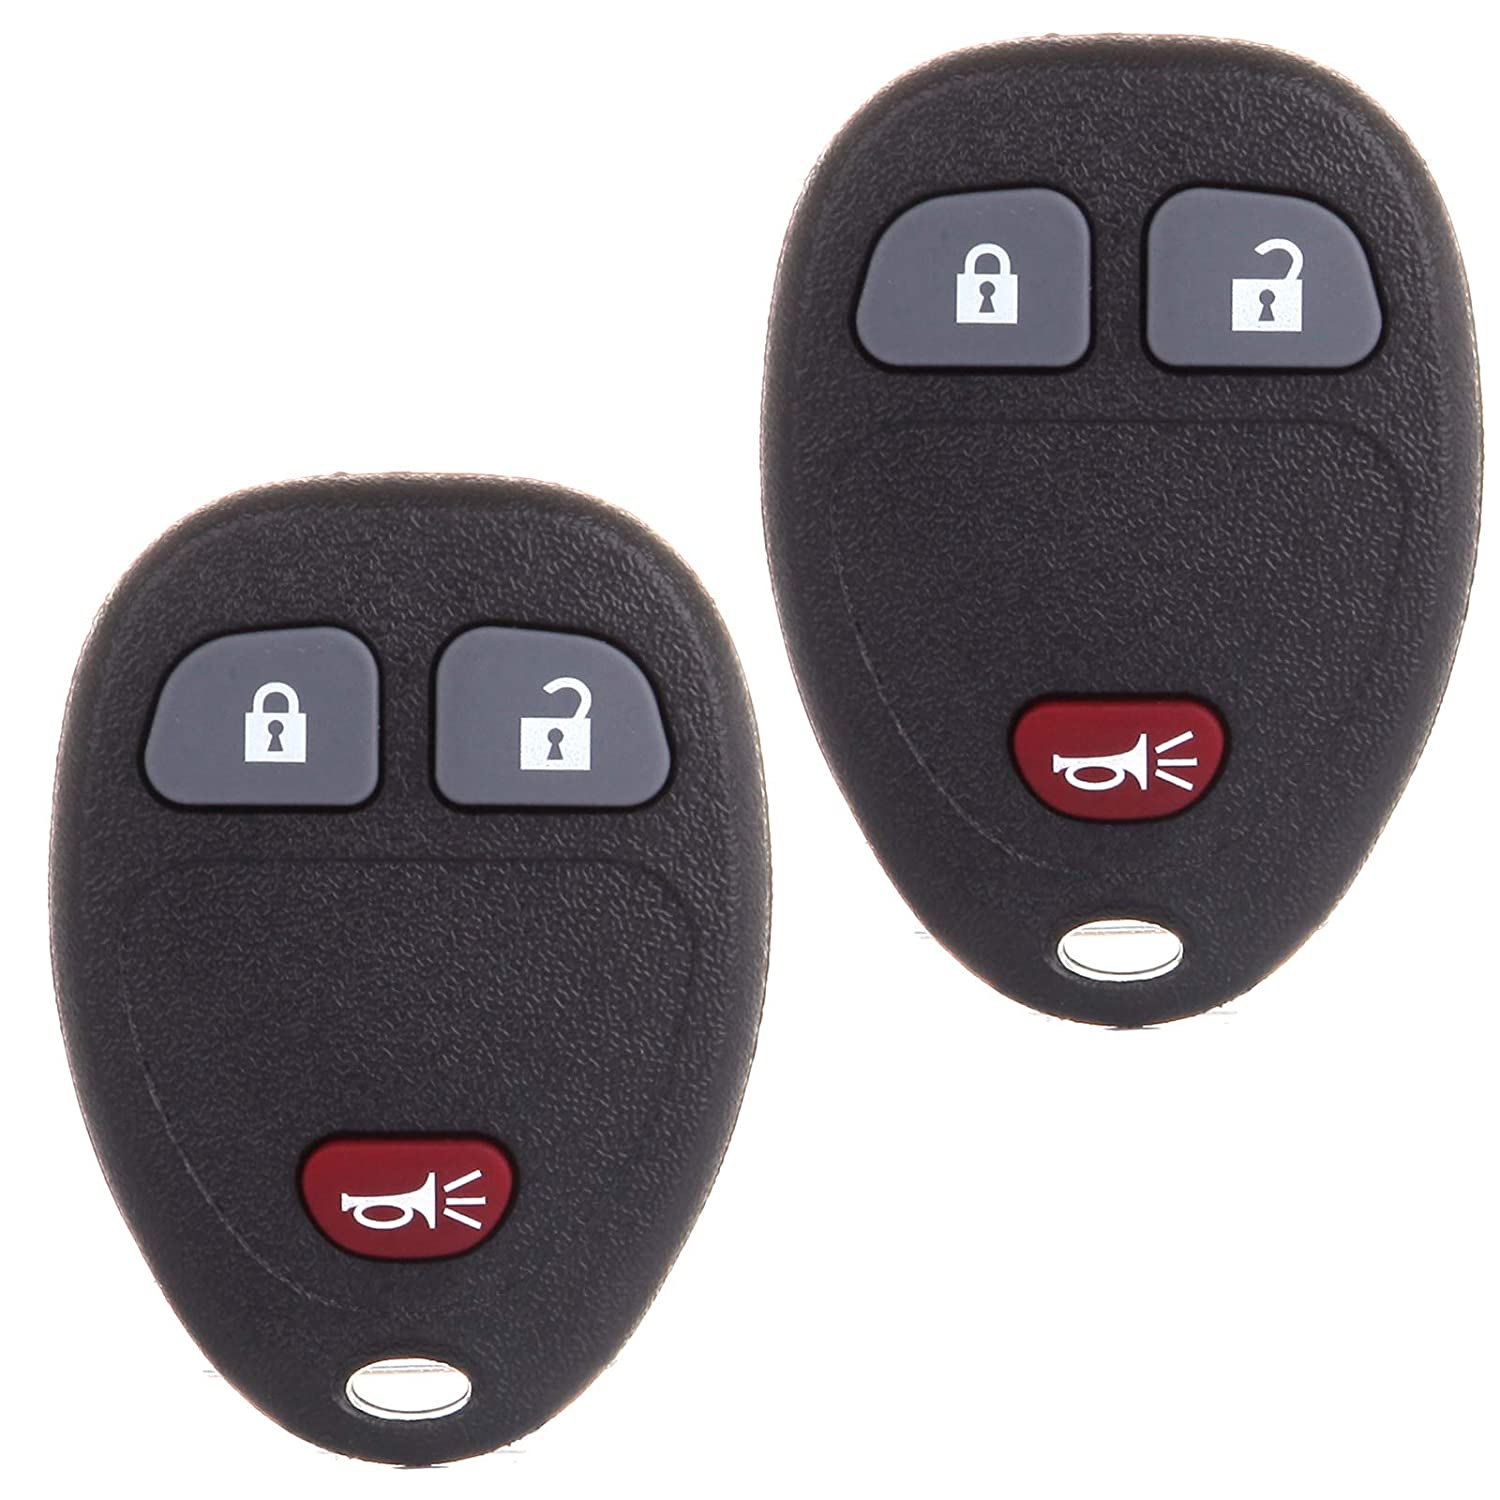 SCITOO Replacement fit for 2X 3 Buttons Keyless Entry Remote Key Fob Chevy Saturn GMC Pontiac Buick Cadillac Suzuki Series OUC60270